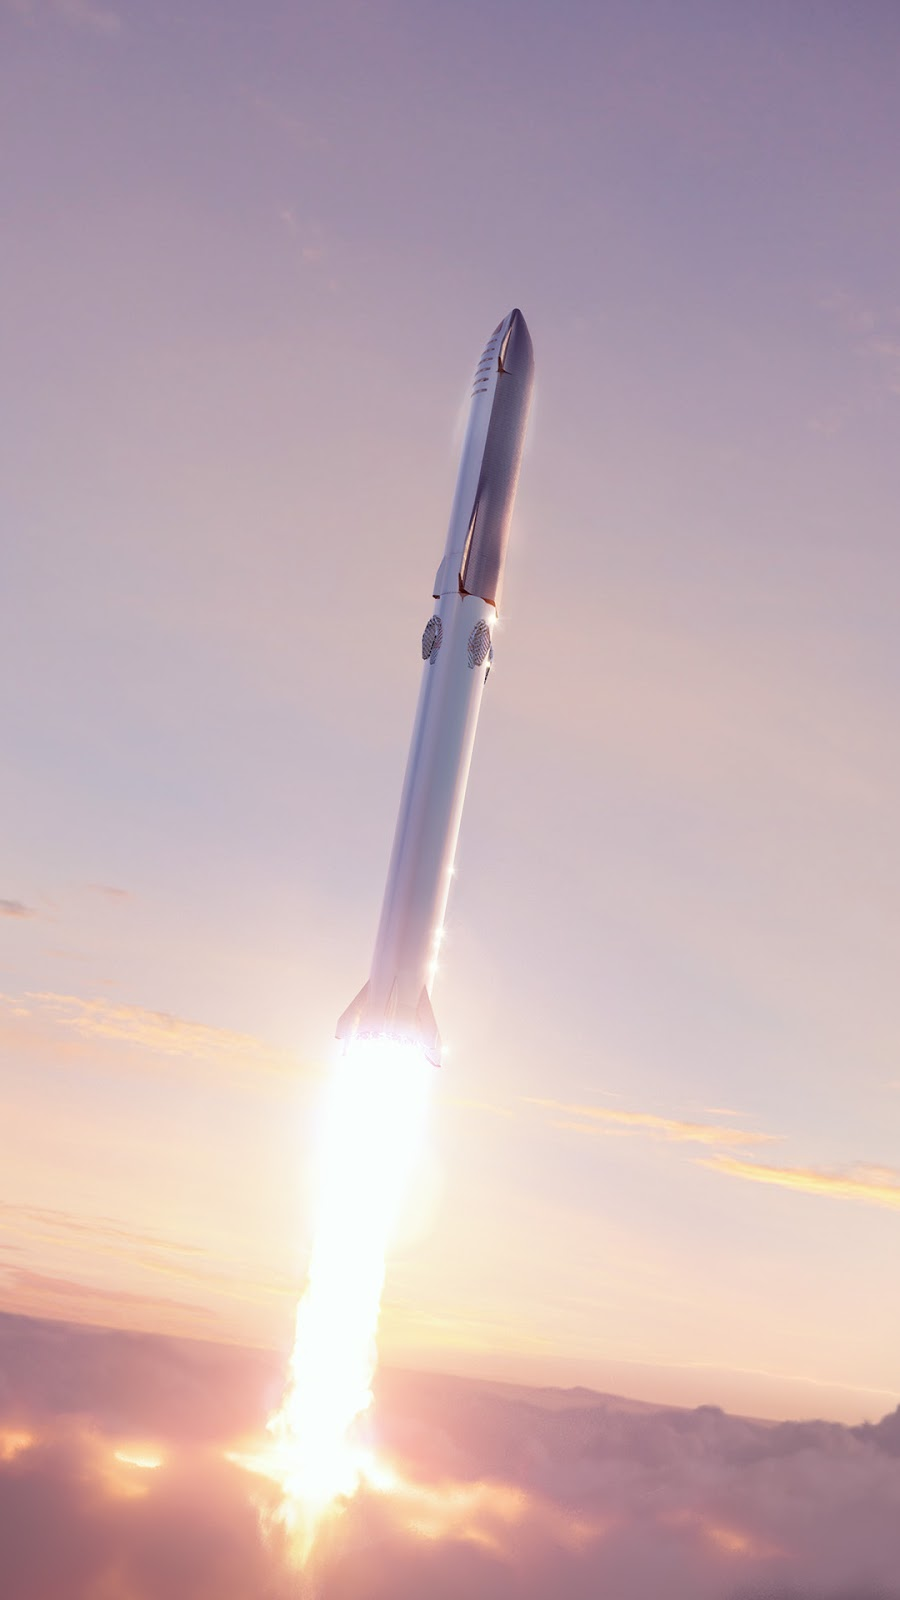 9:16 mobile HD wallpaper of SpaceX's new Starship Super Heavy launch